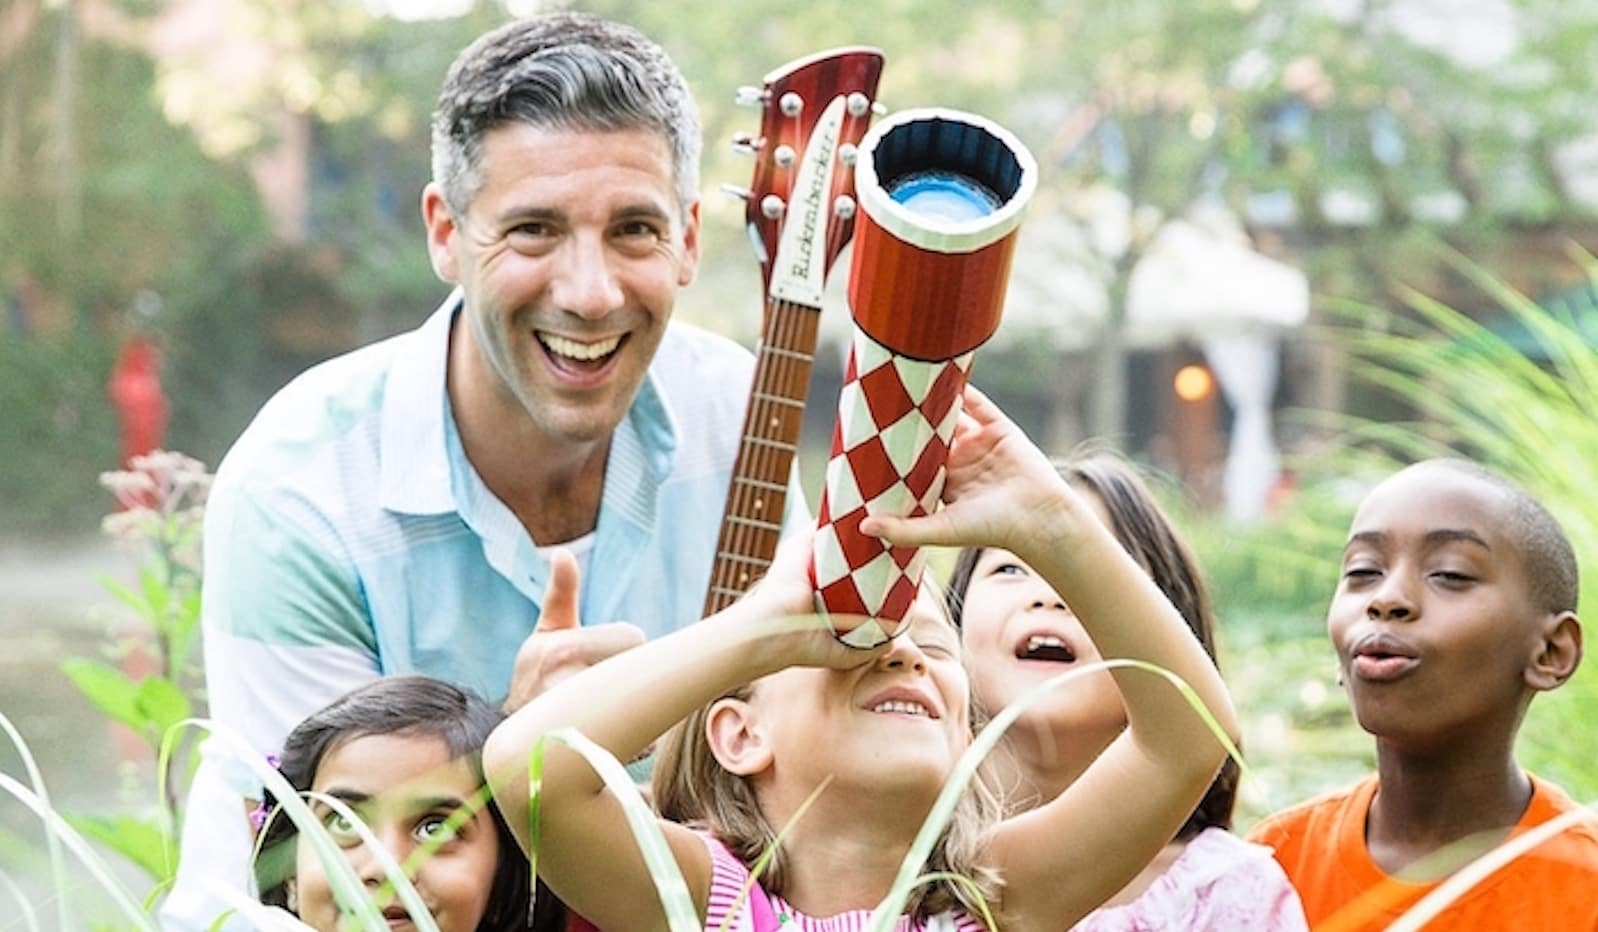 Alex & the Kaleidoscope Perform Family Concert at the Jewish Museum Sunday, November 20